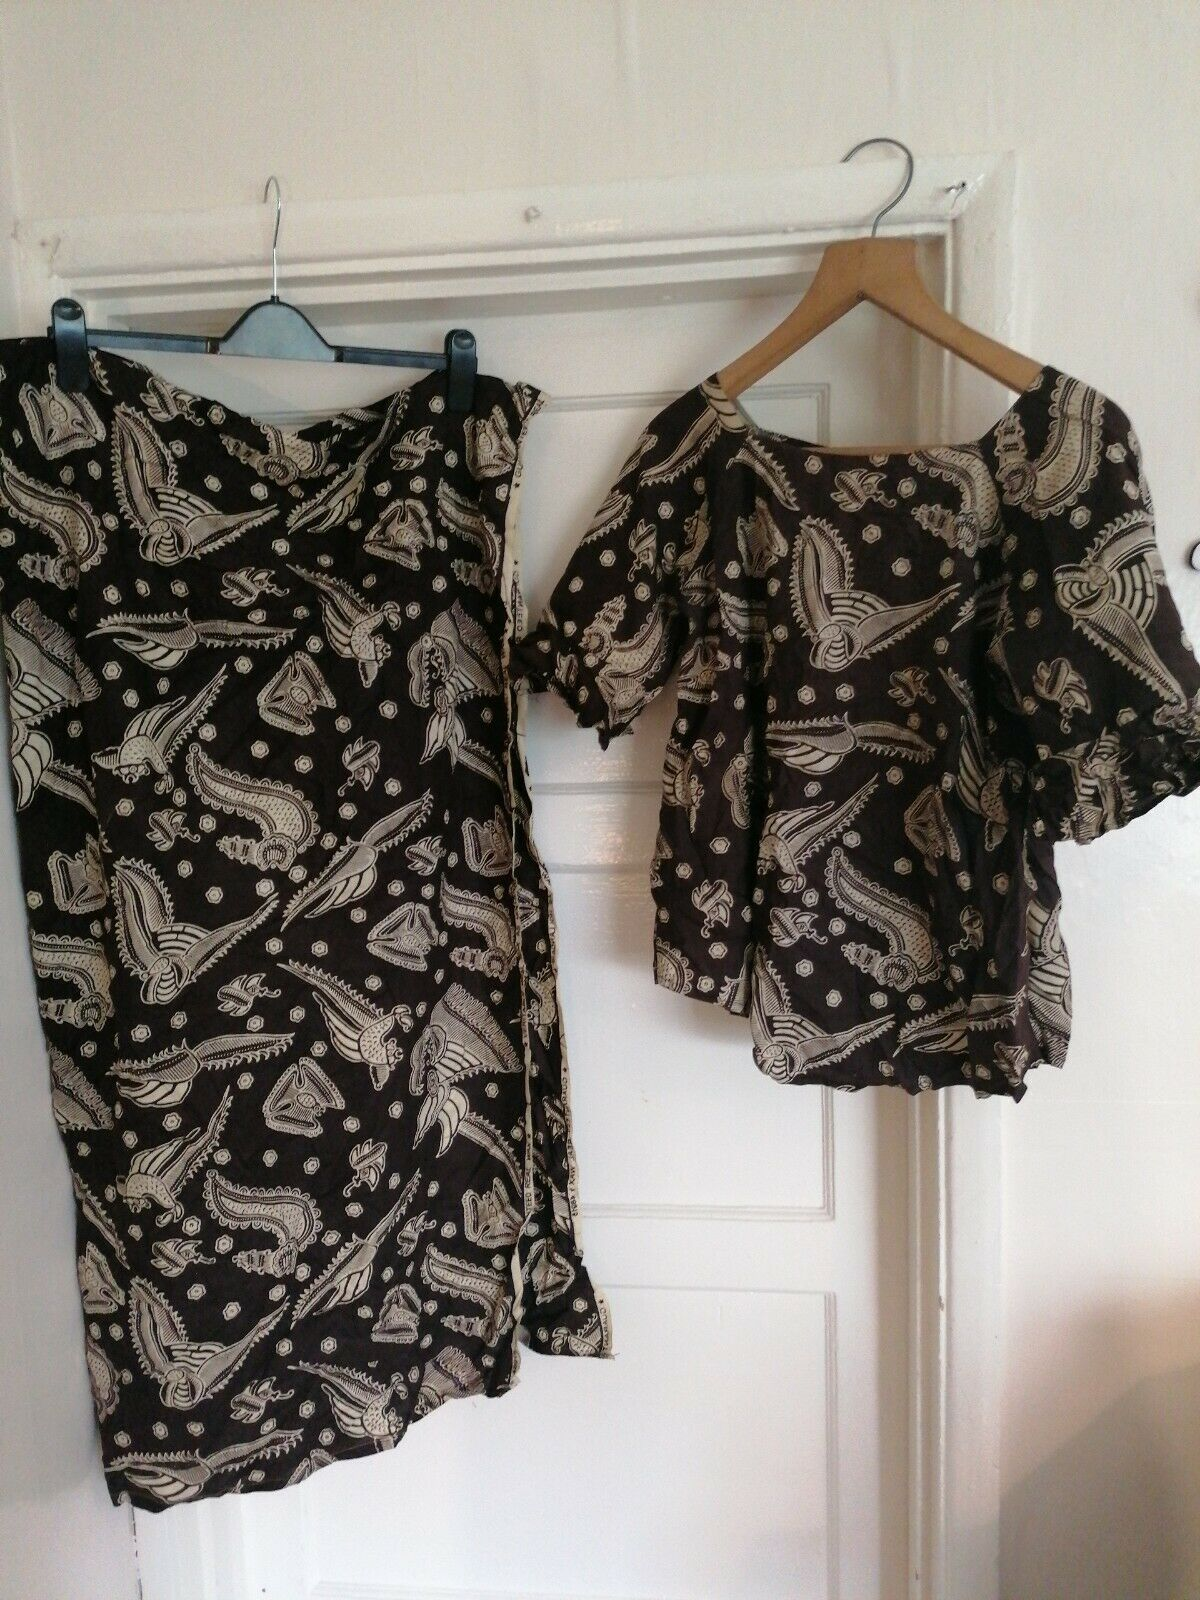 Nigerian / African 3 Piece Ladies Suit / Outfit. Skirt, Blouse And Scarf Size 10